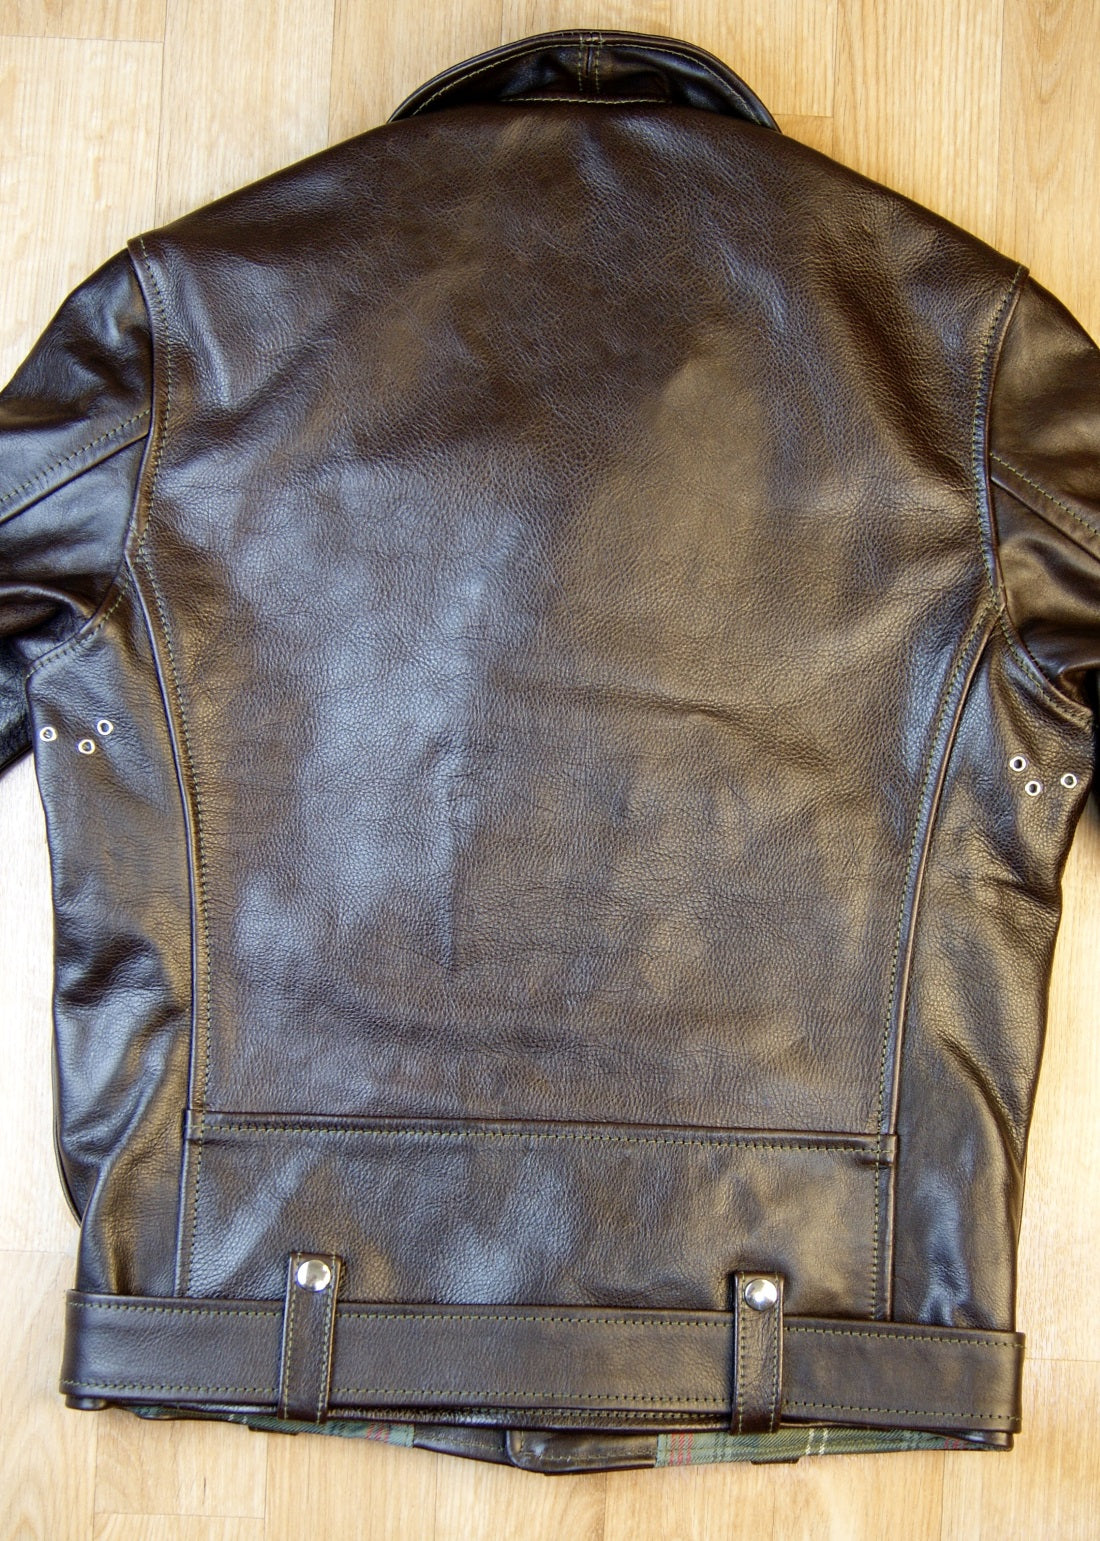 Aero D-Pocket Ridley, size 38, Dark Seal Vicenza Horsehide